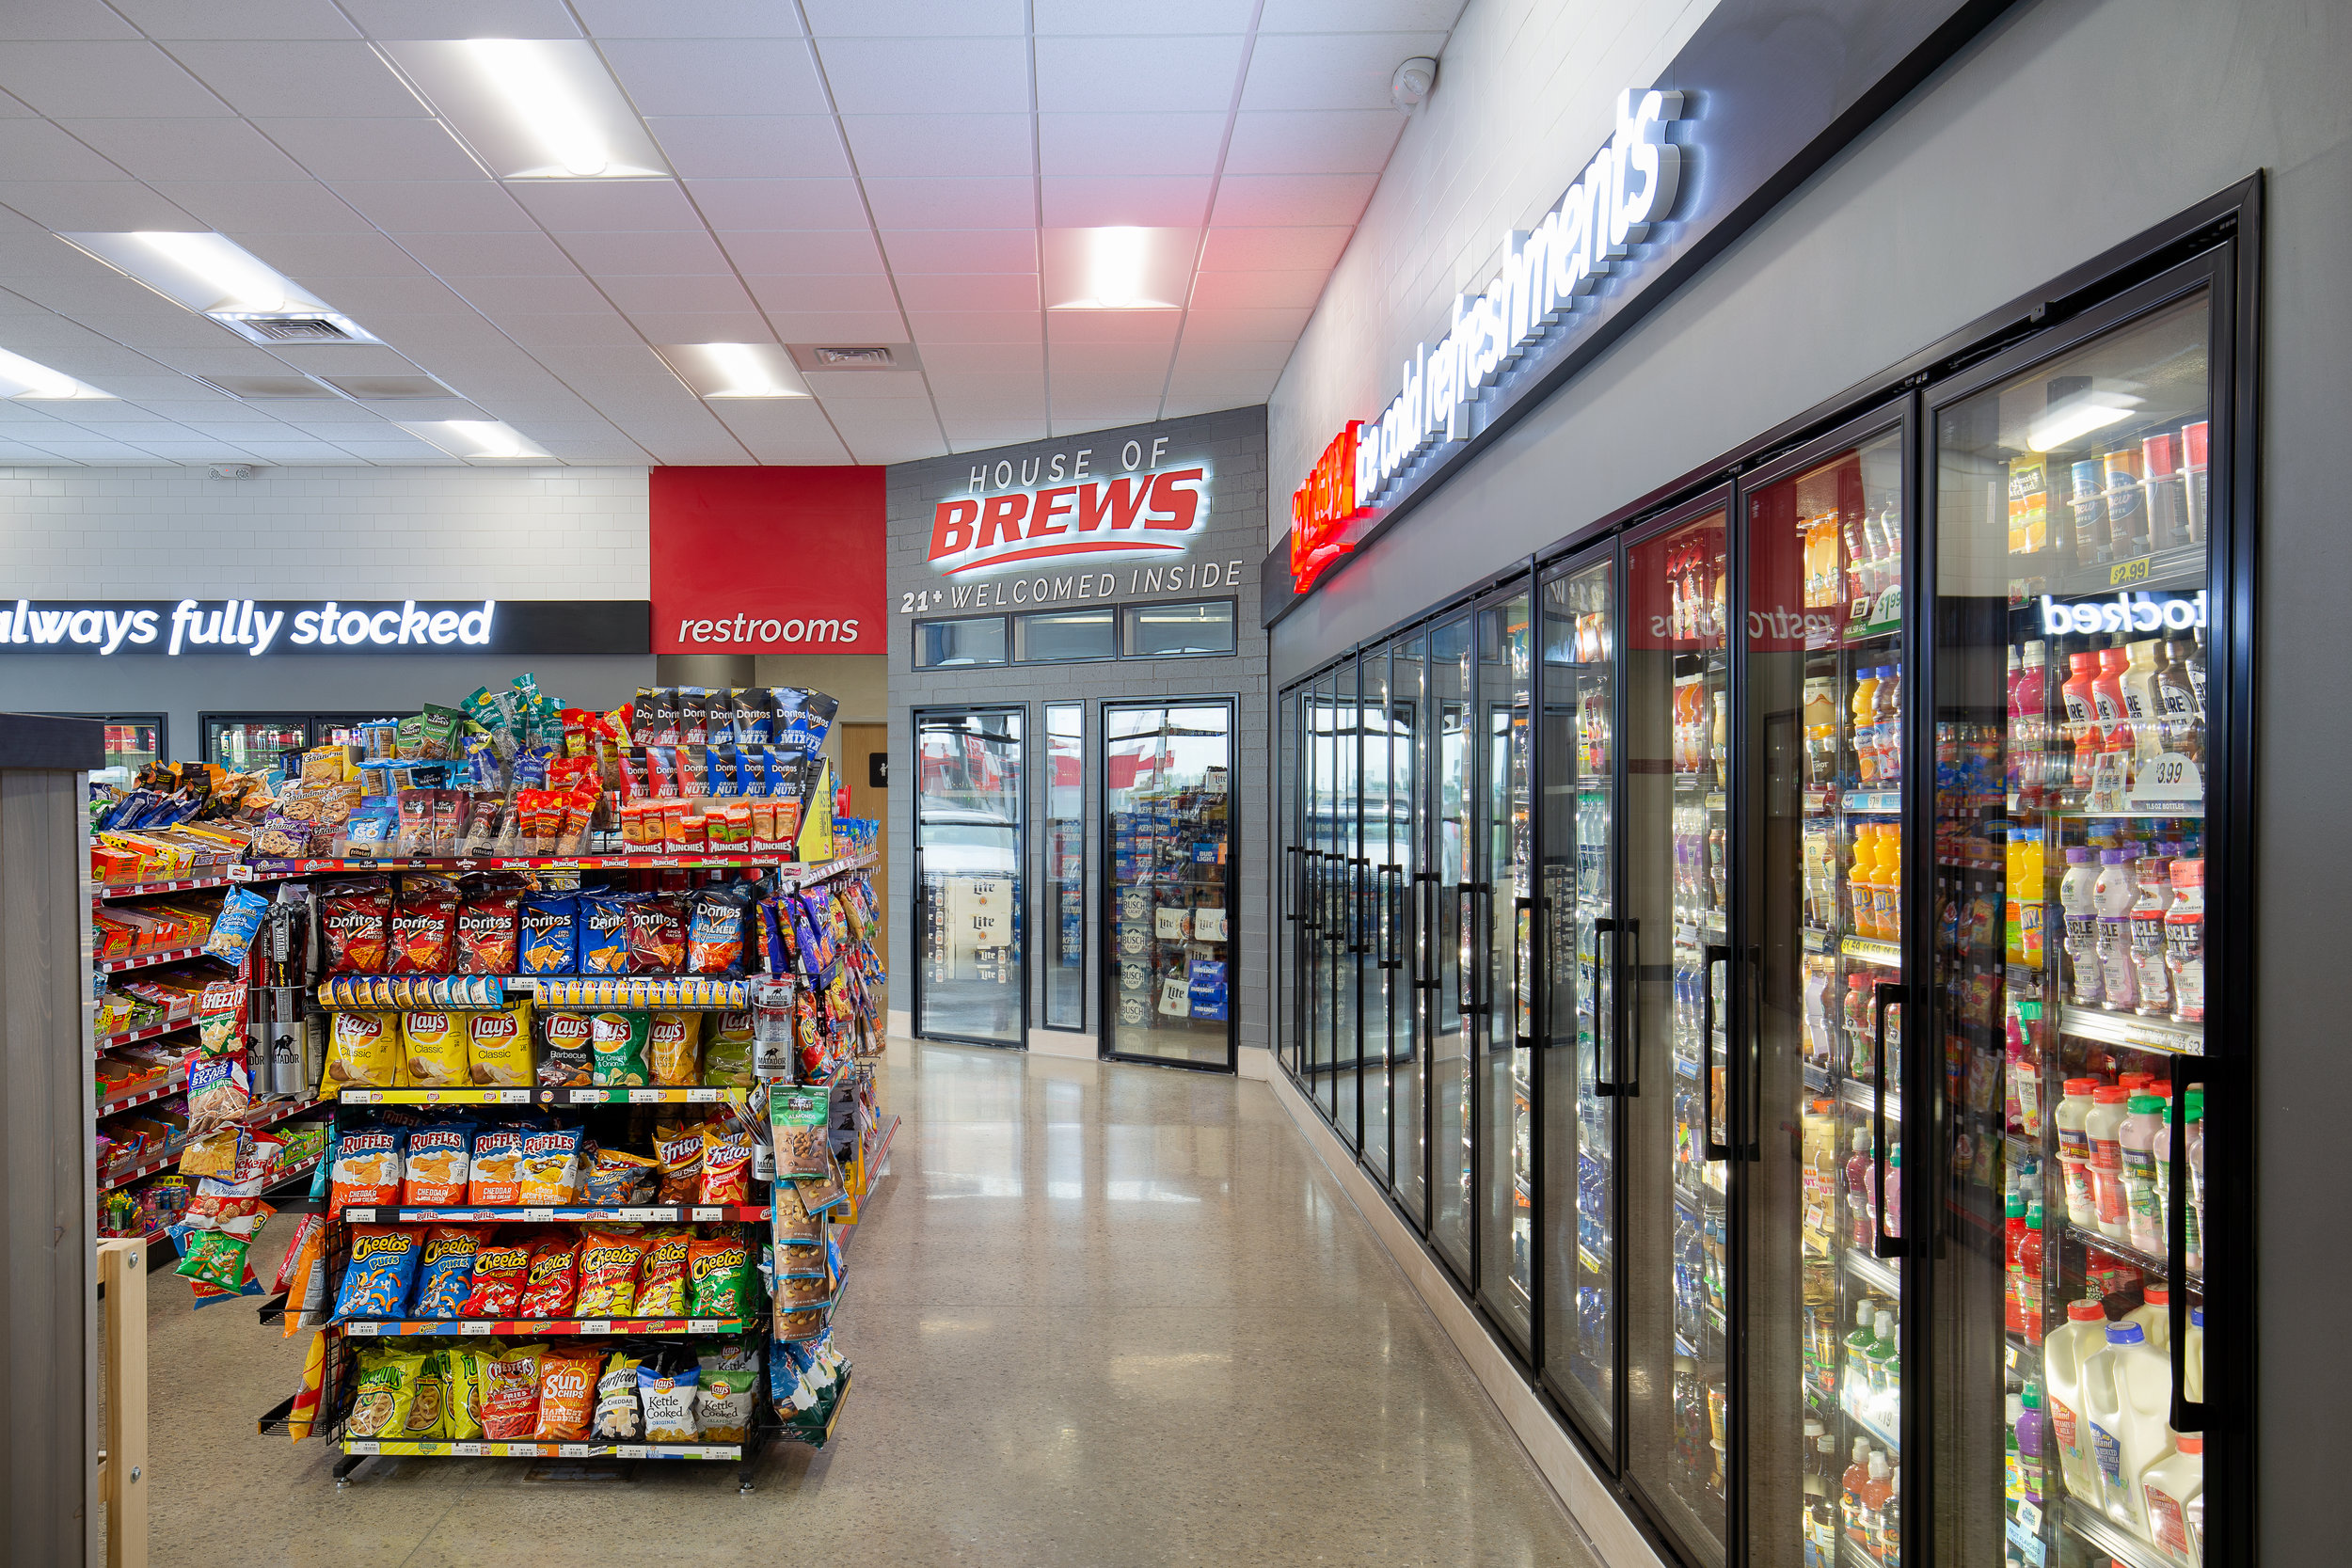 11_ThompsonPhotography_20180607_Pete's+Convenience+Store (1).jpg